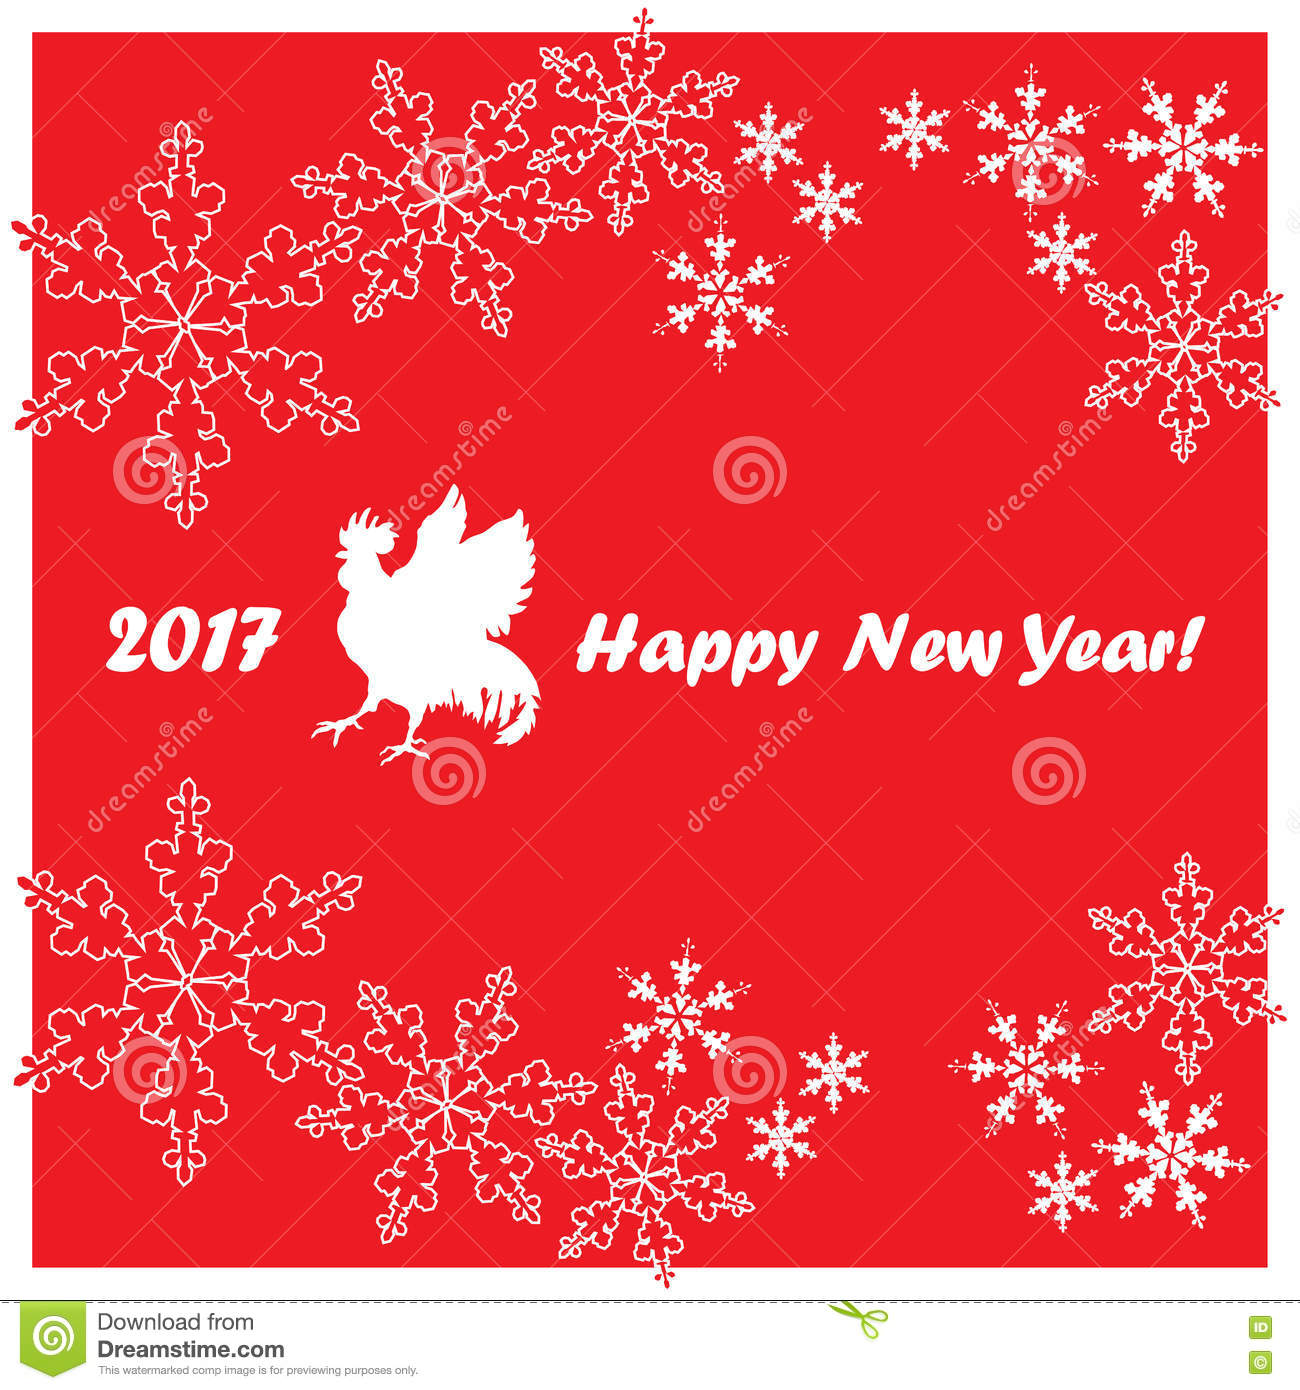 New year 2017 greeting pictures year of rooster happy chinese new year - 2017 Happy New Year Greeting Card Chinese New Year Of The Red Rooster Royalty